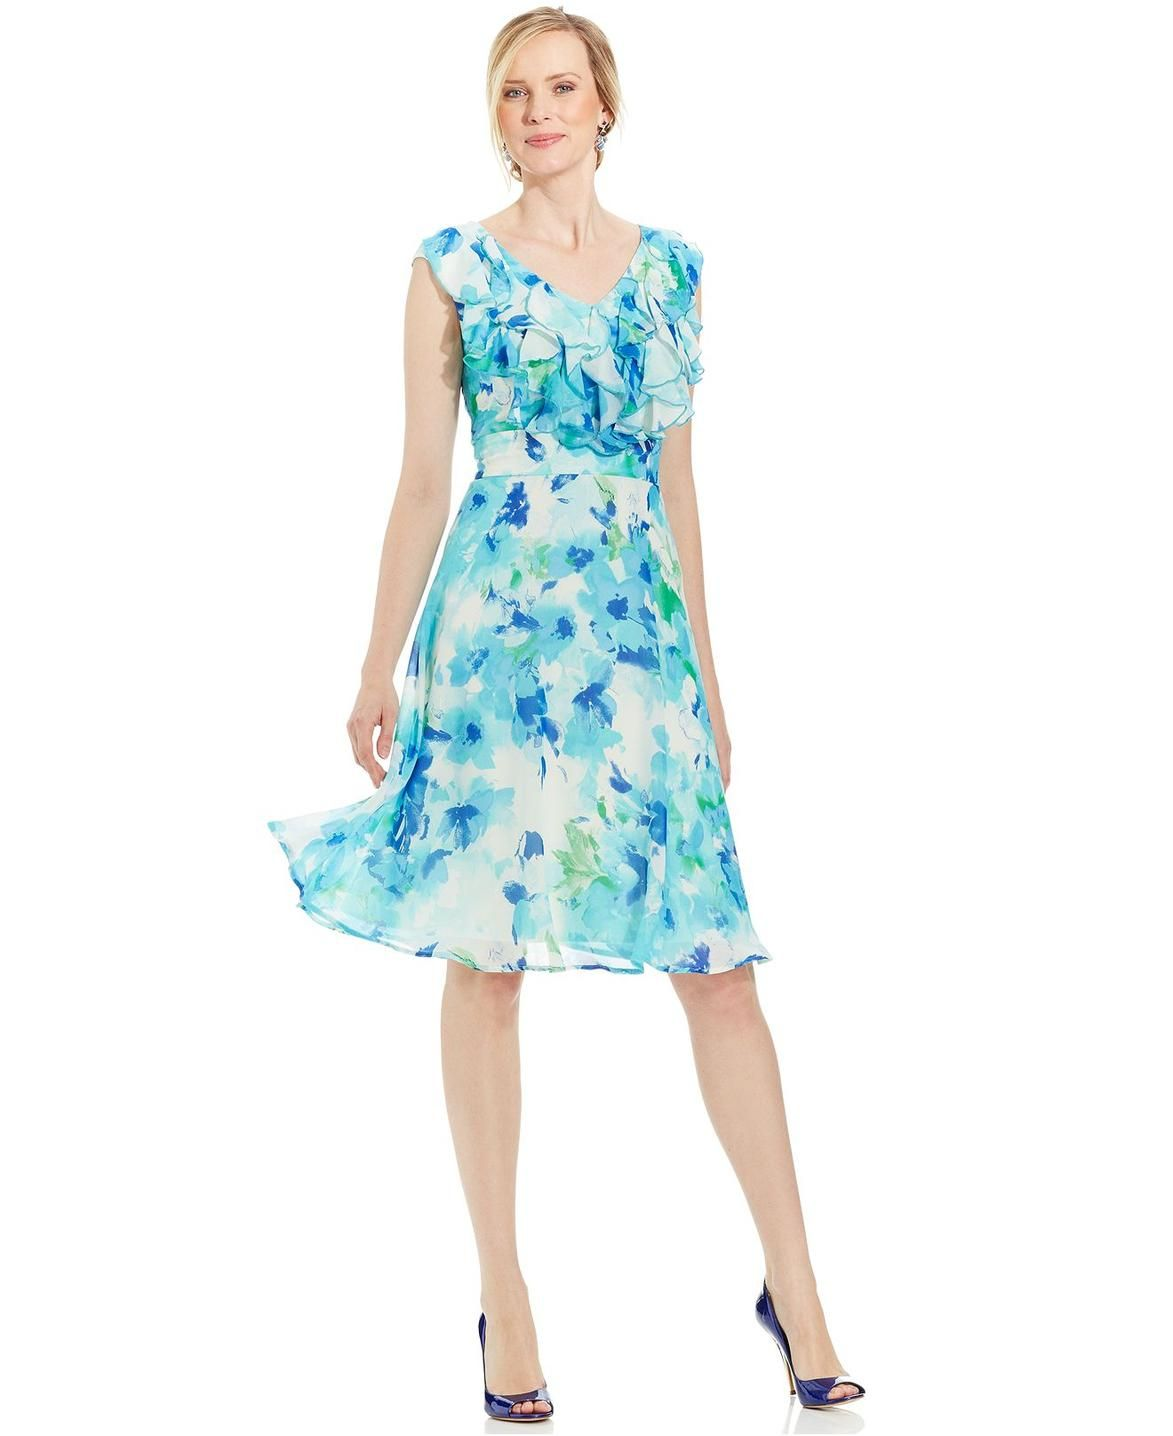 Connected Petite Floral-Print Ruffled Dress http://picvpic.com/women ...